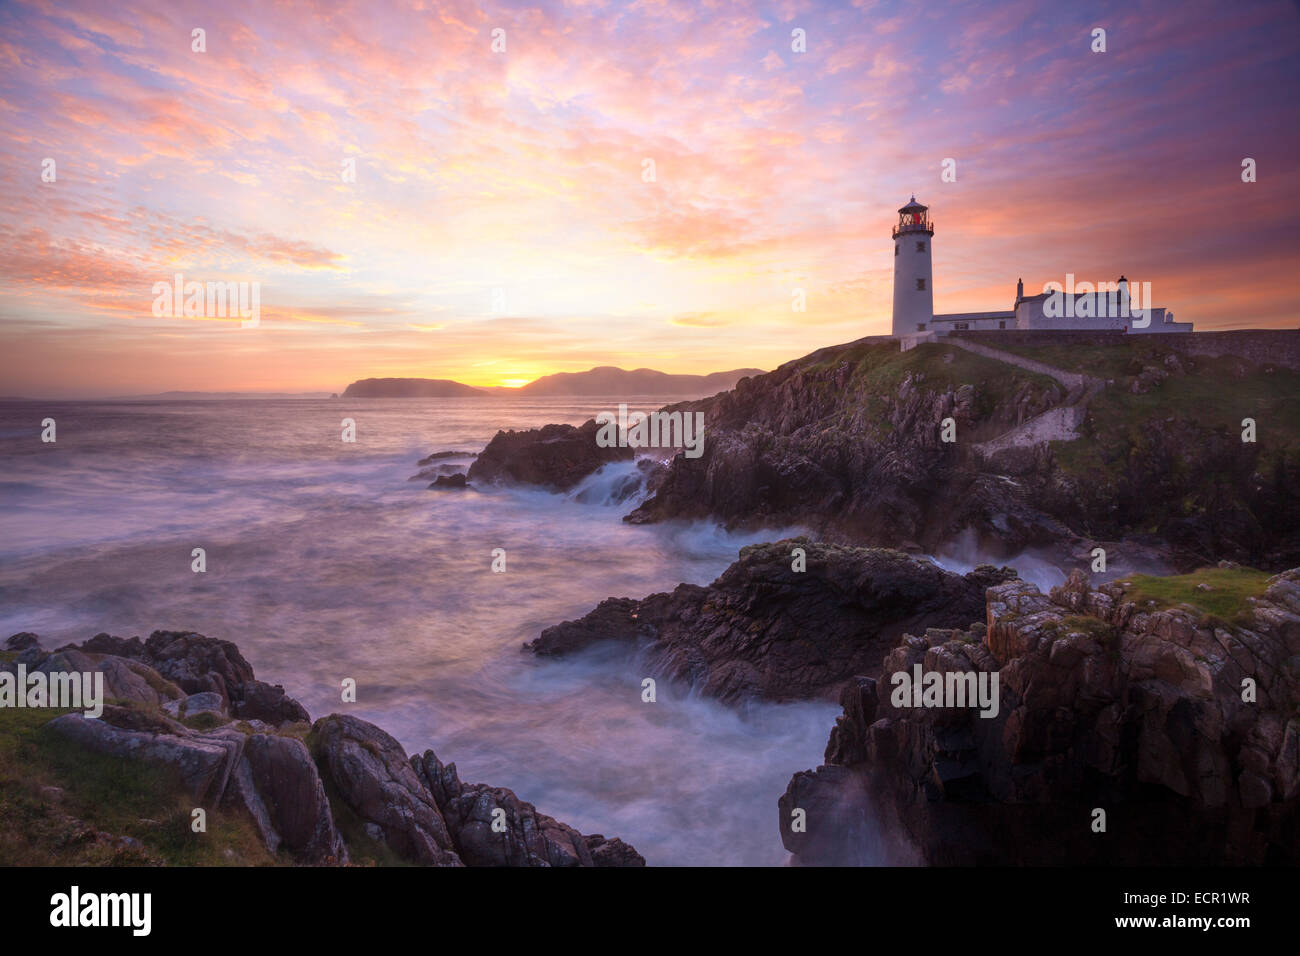 Sunrise over Fanad Head Lighthouse, Fanad Head, County Donegal, Ireland. Stock Photo